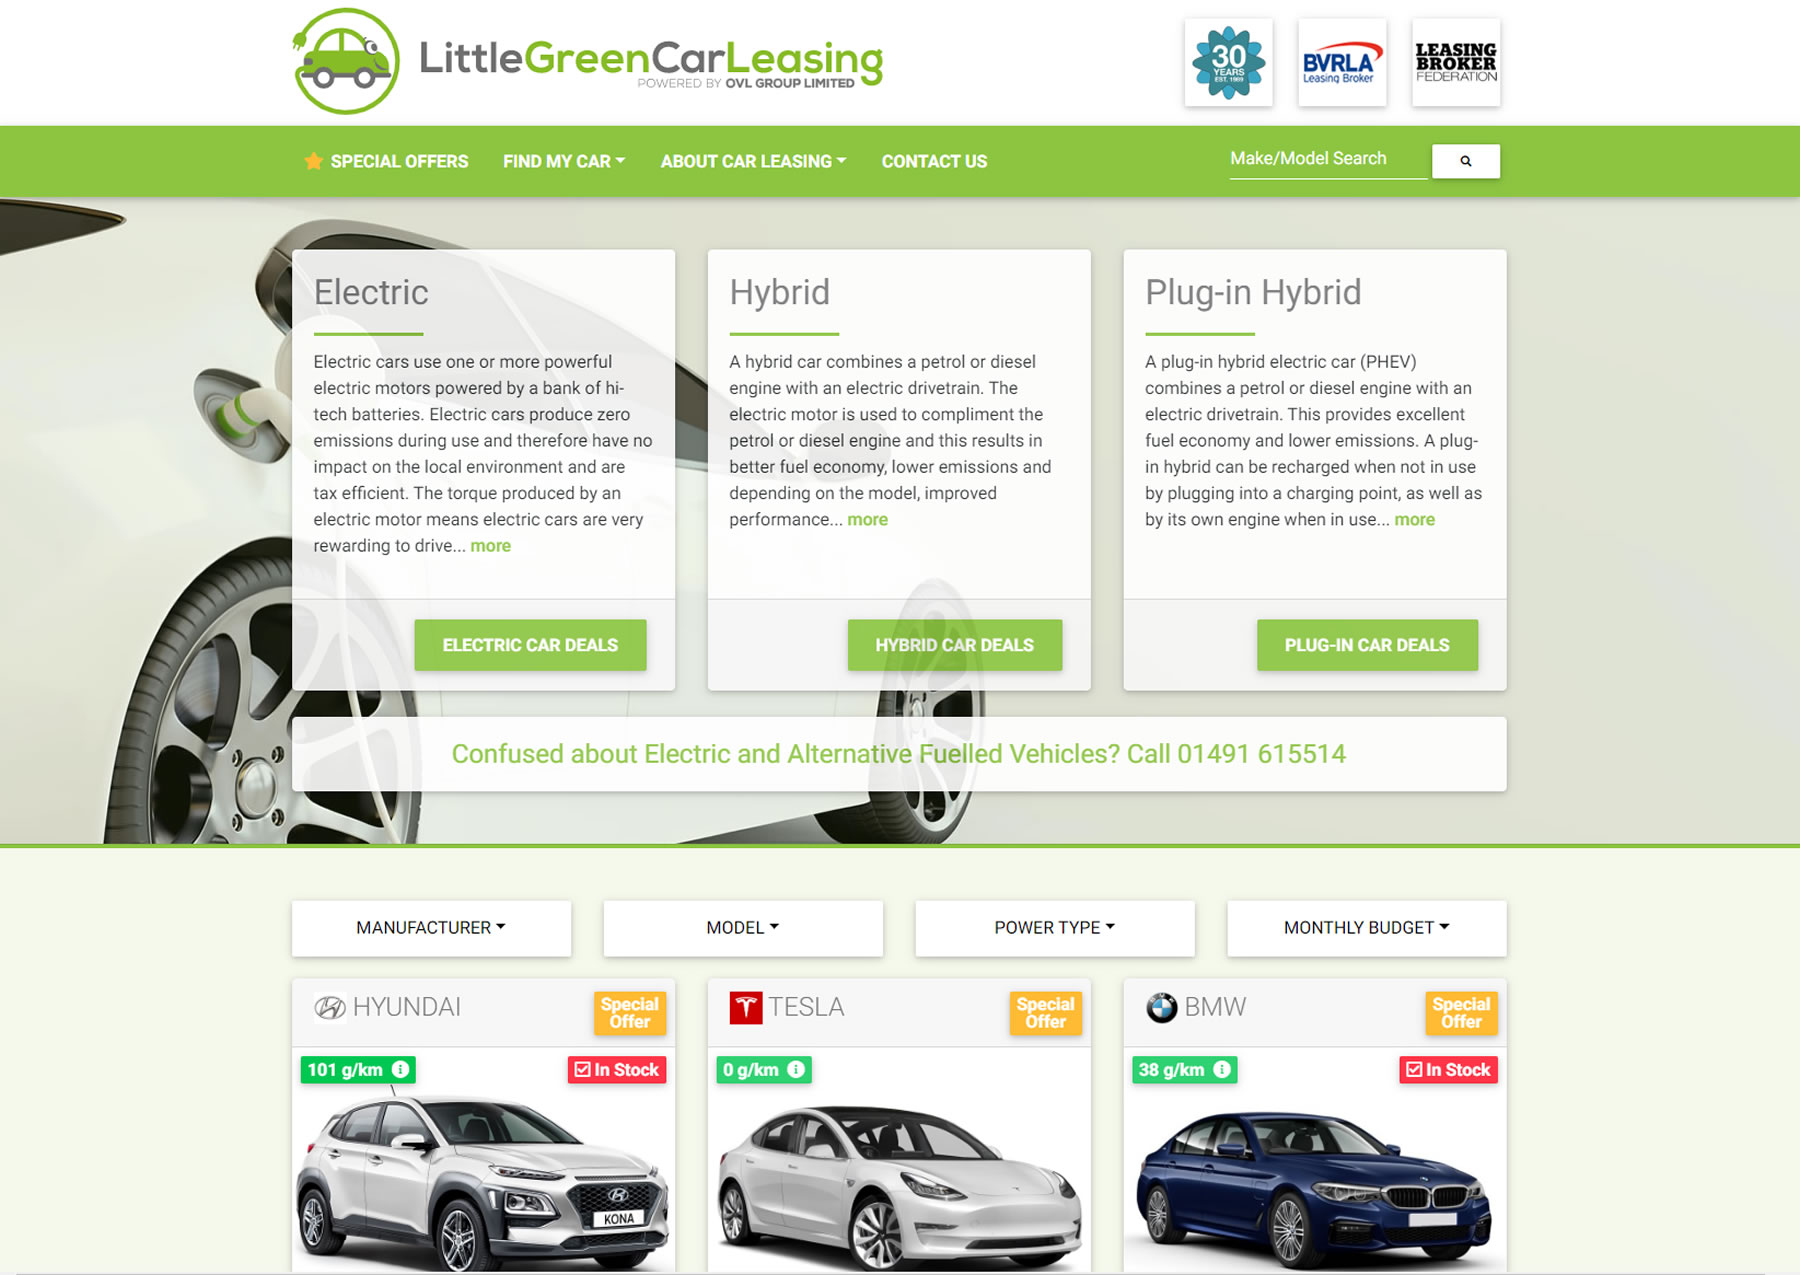 LittleGreenCarLeasing.com